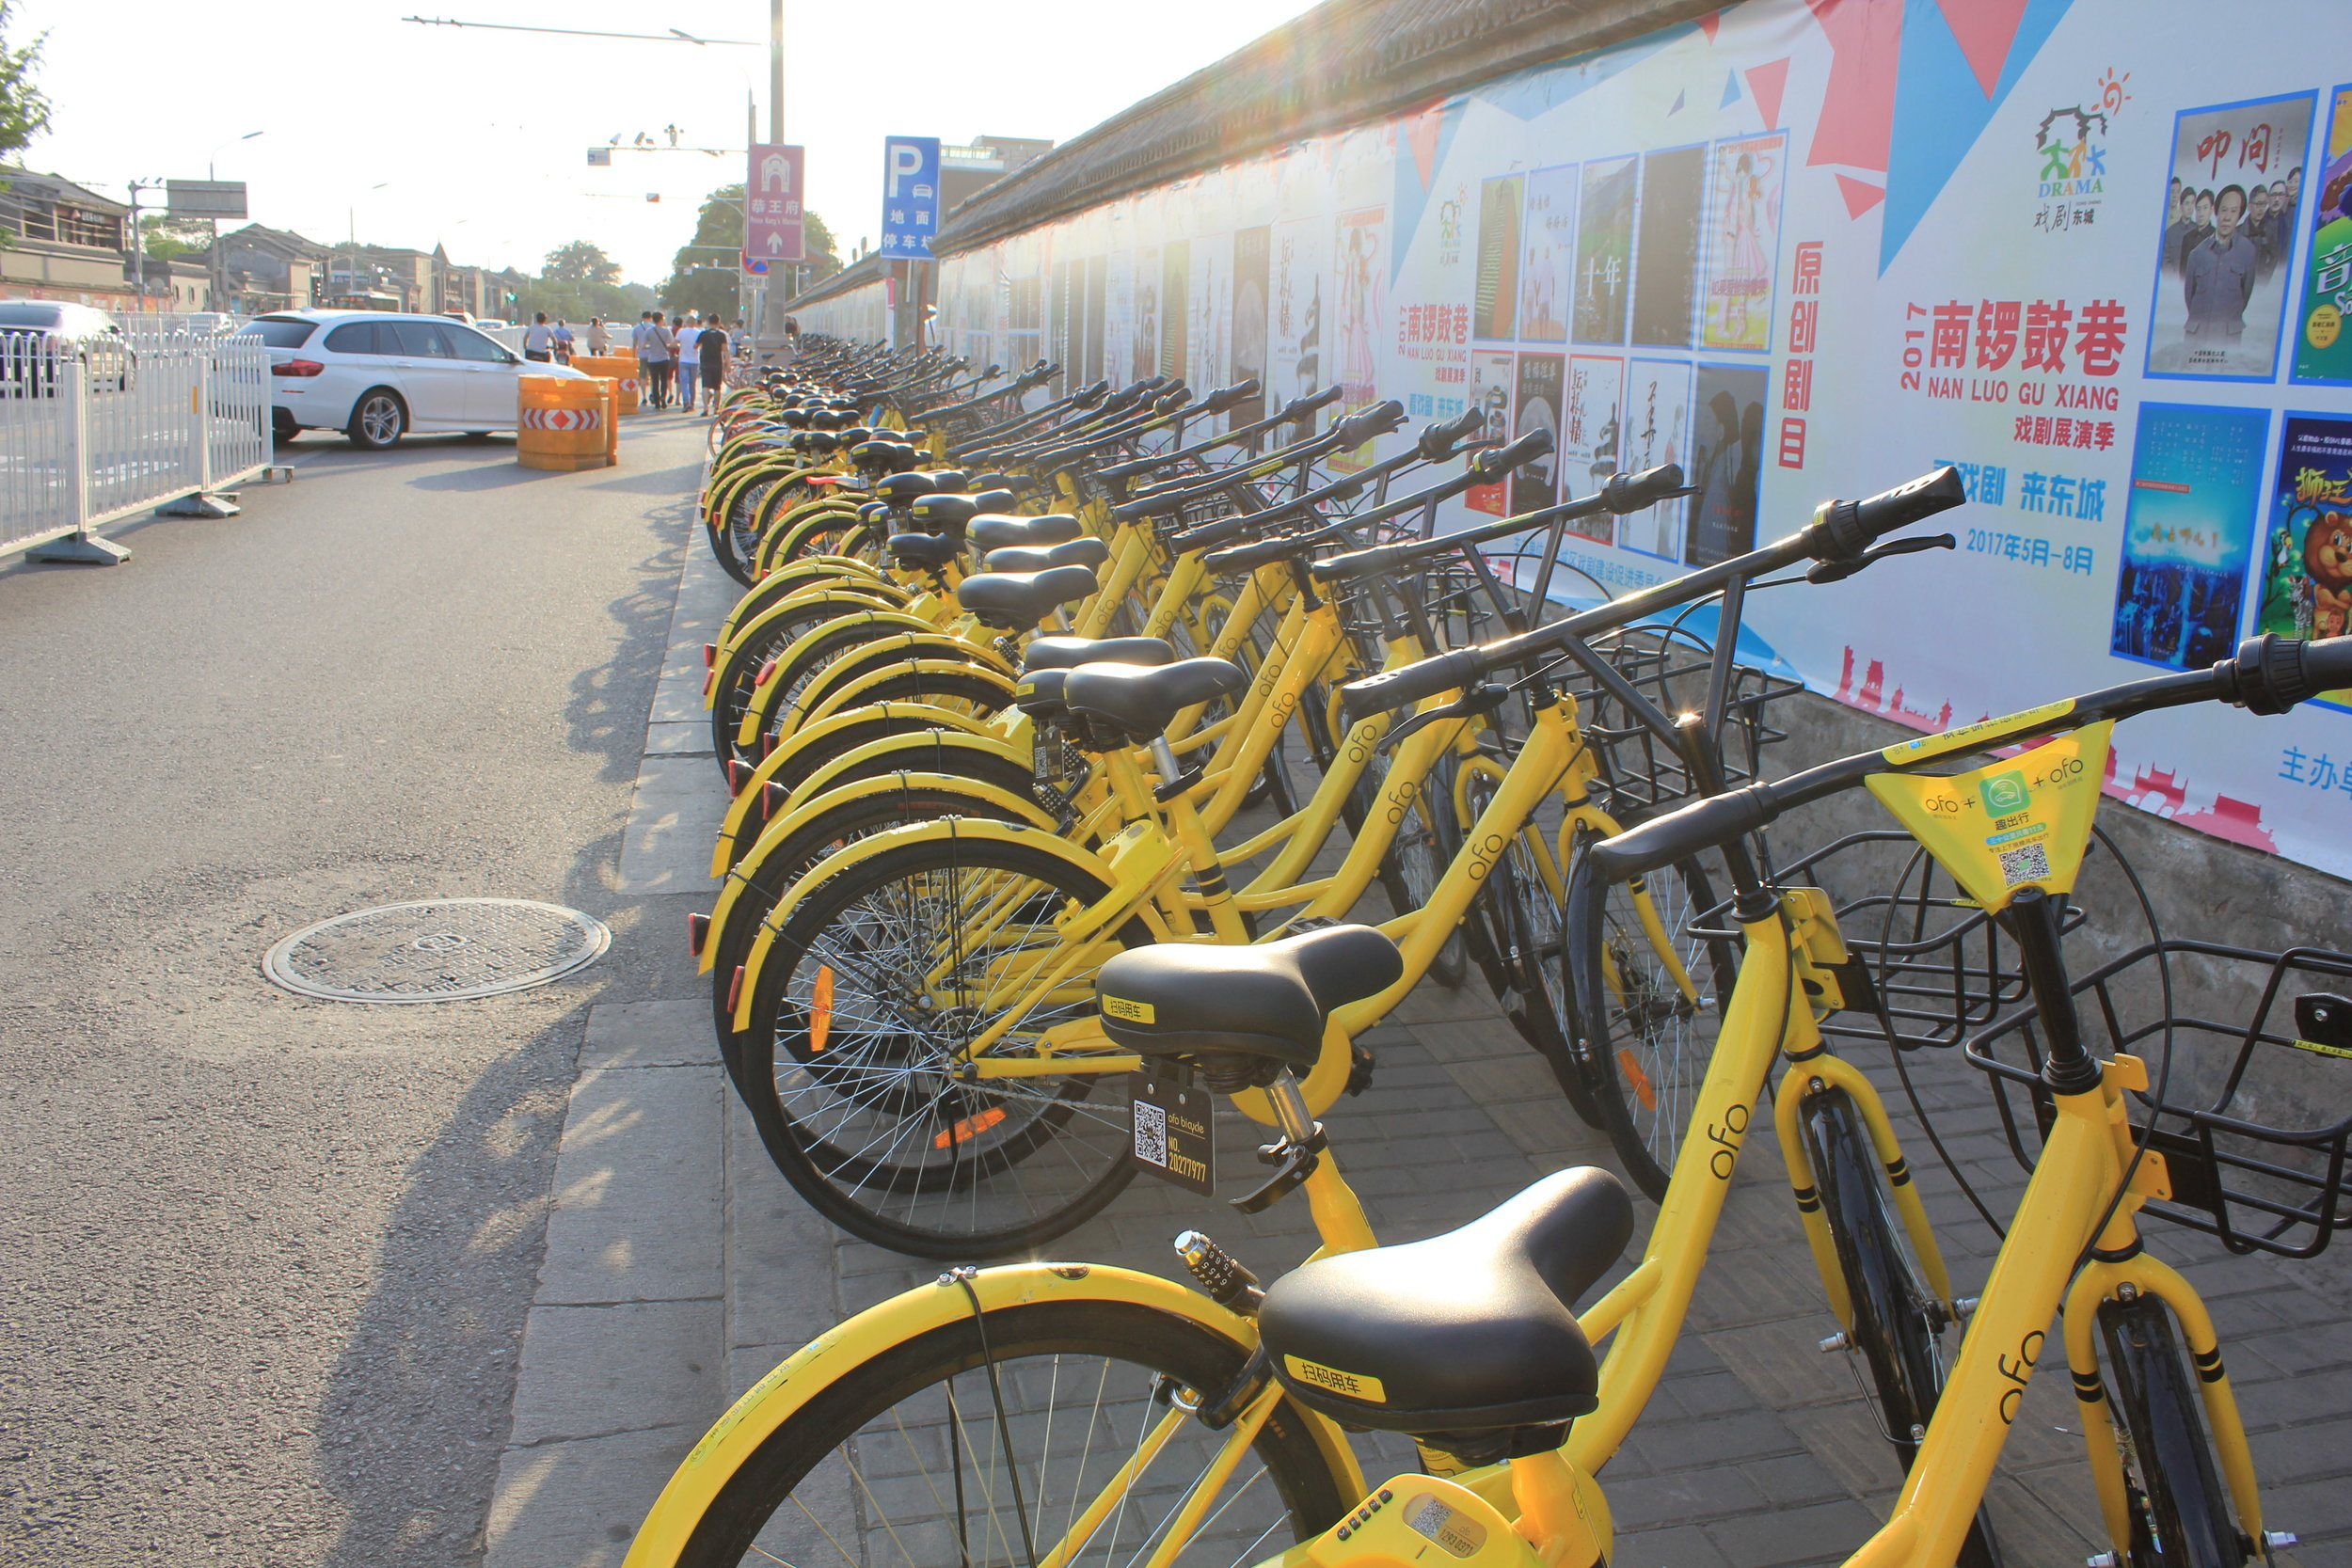 Dozens of Ofo bicycles parked in Nanluoguxiang, Beijing